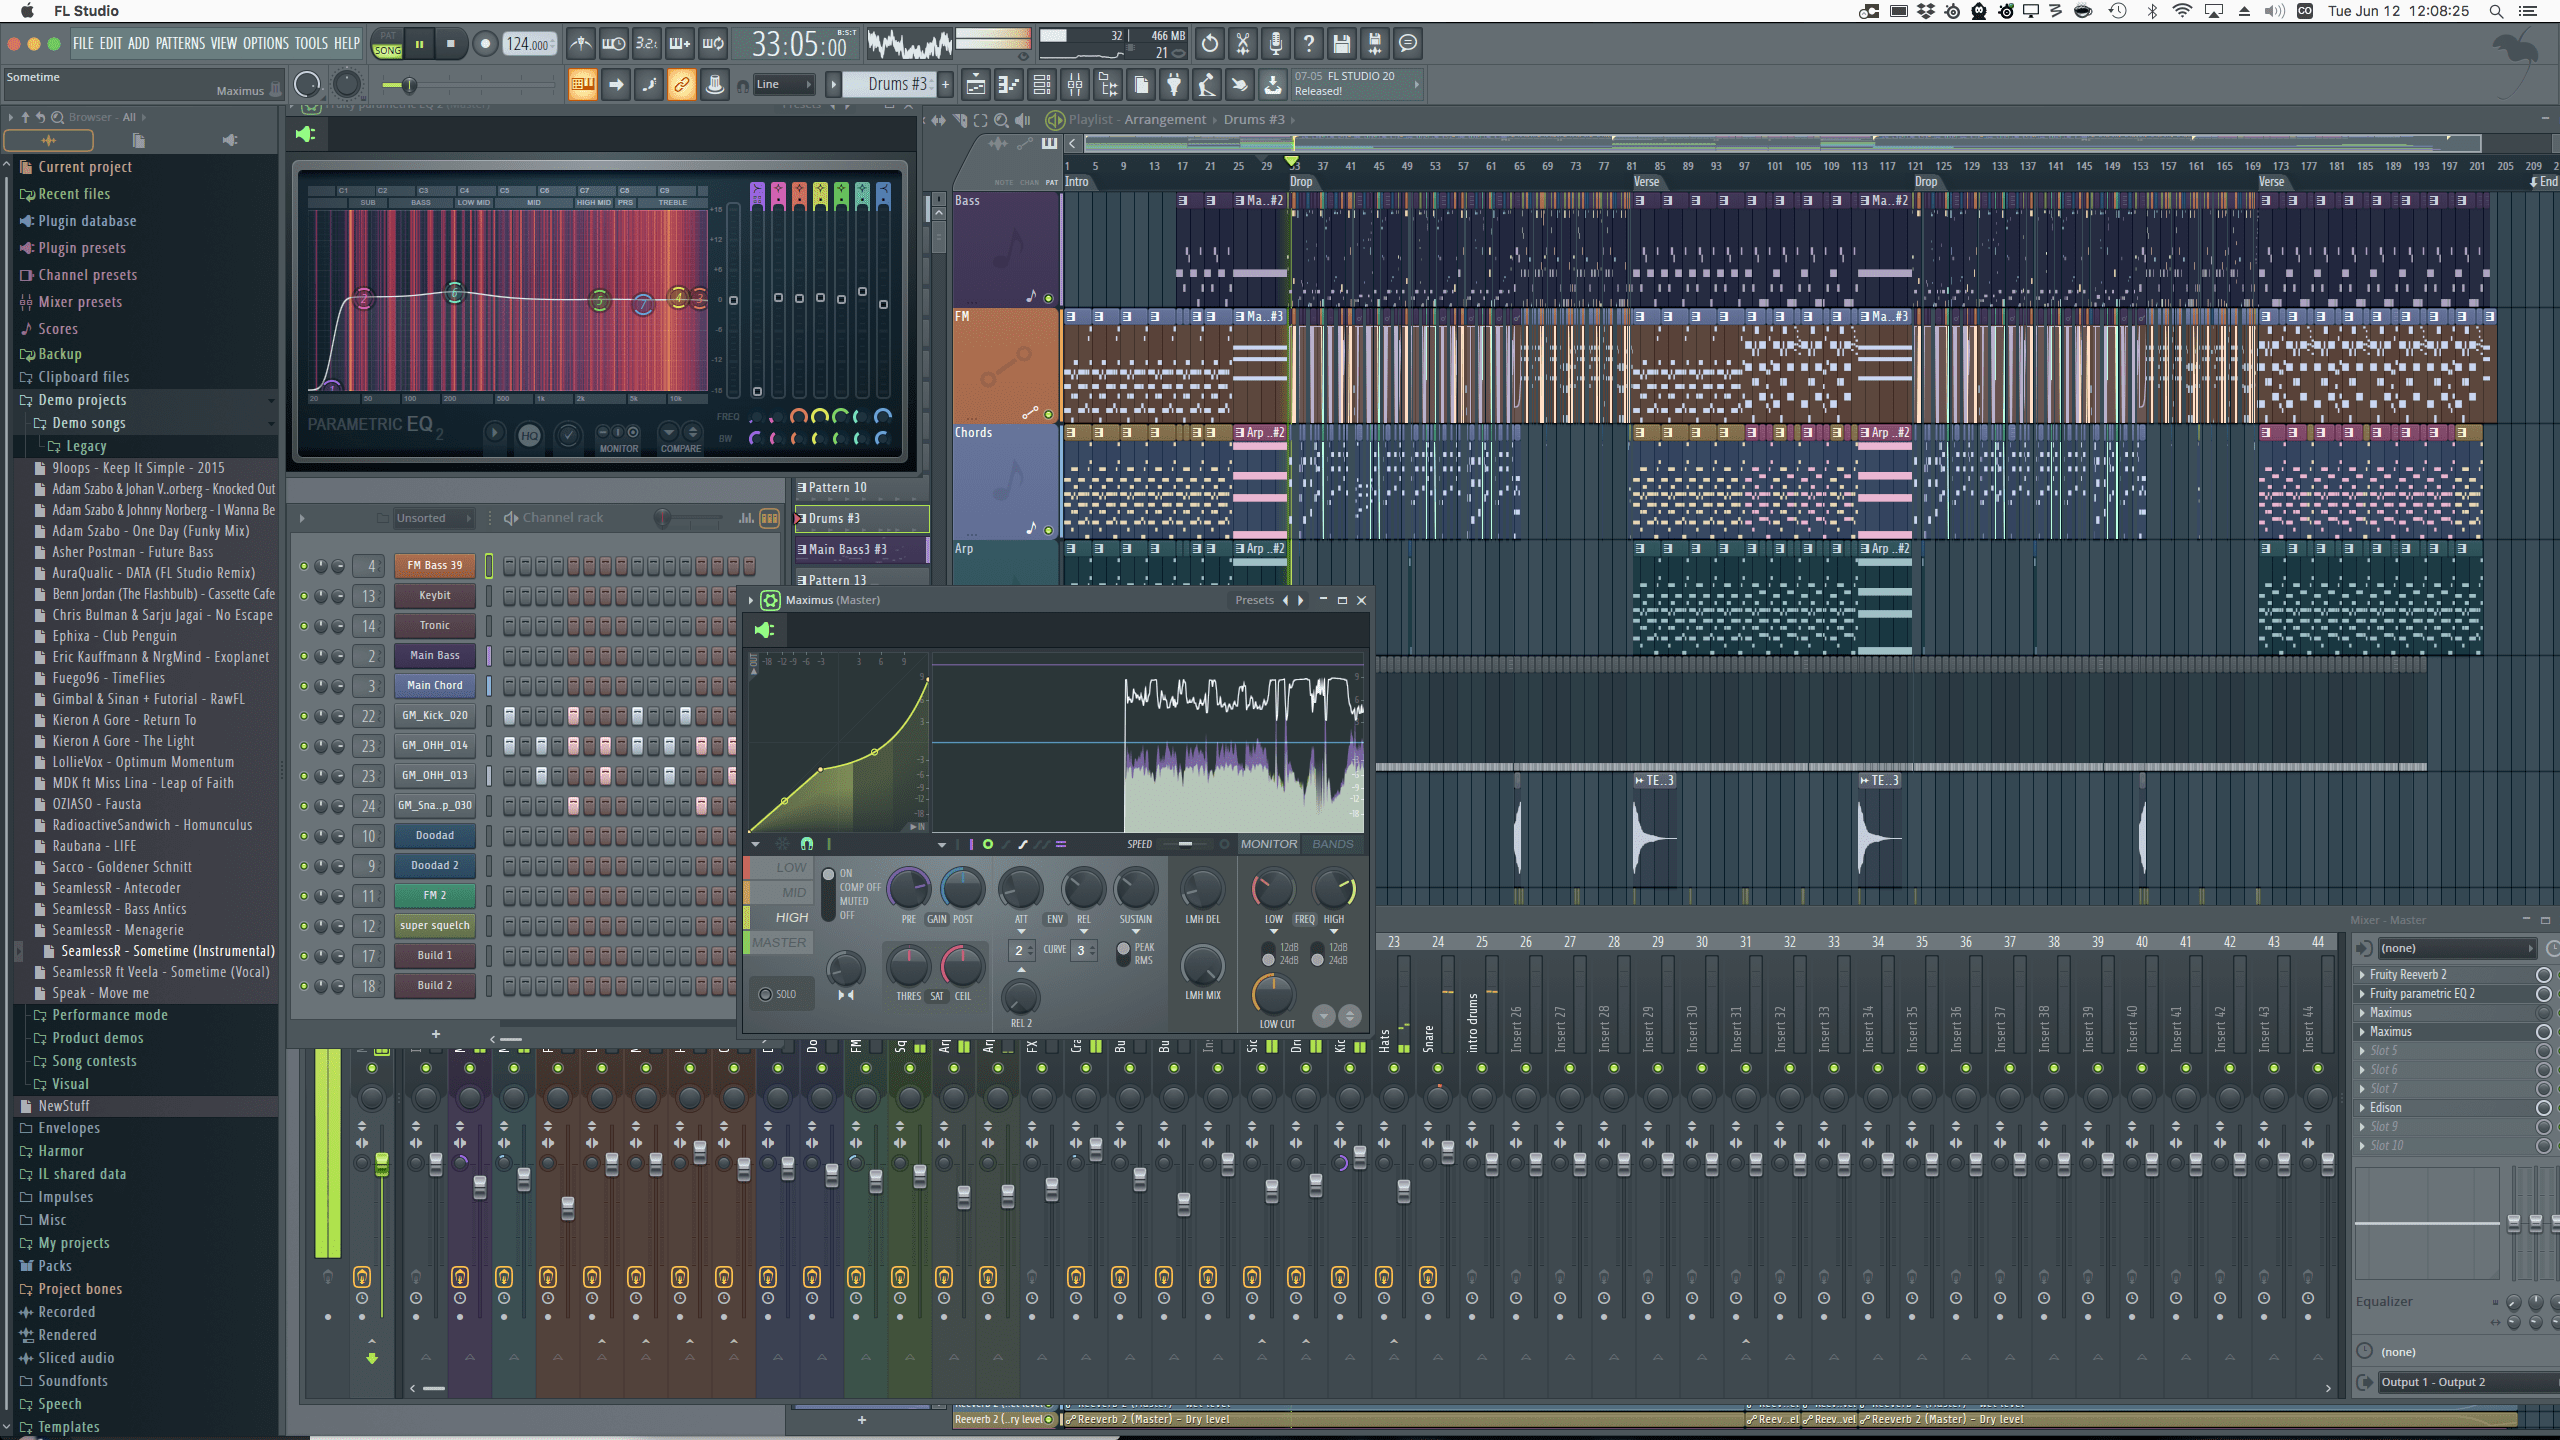 30 days with FLStudio 20 - Part 0: Introduction to this series